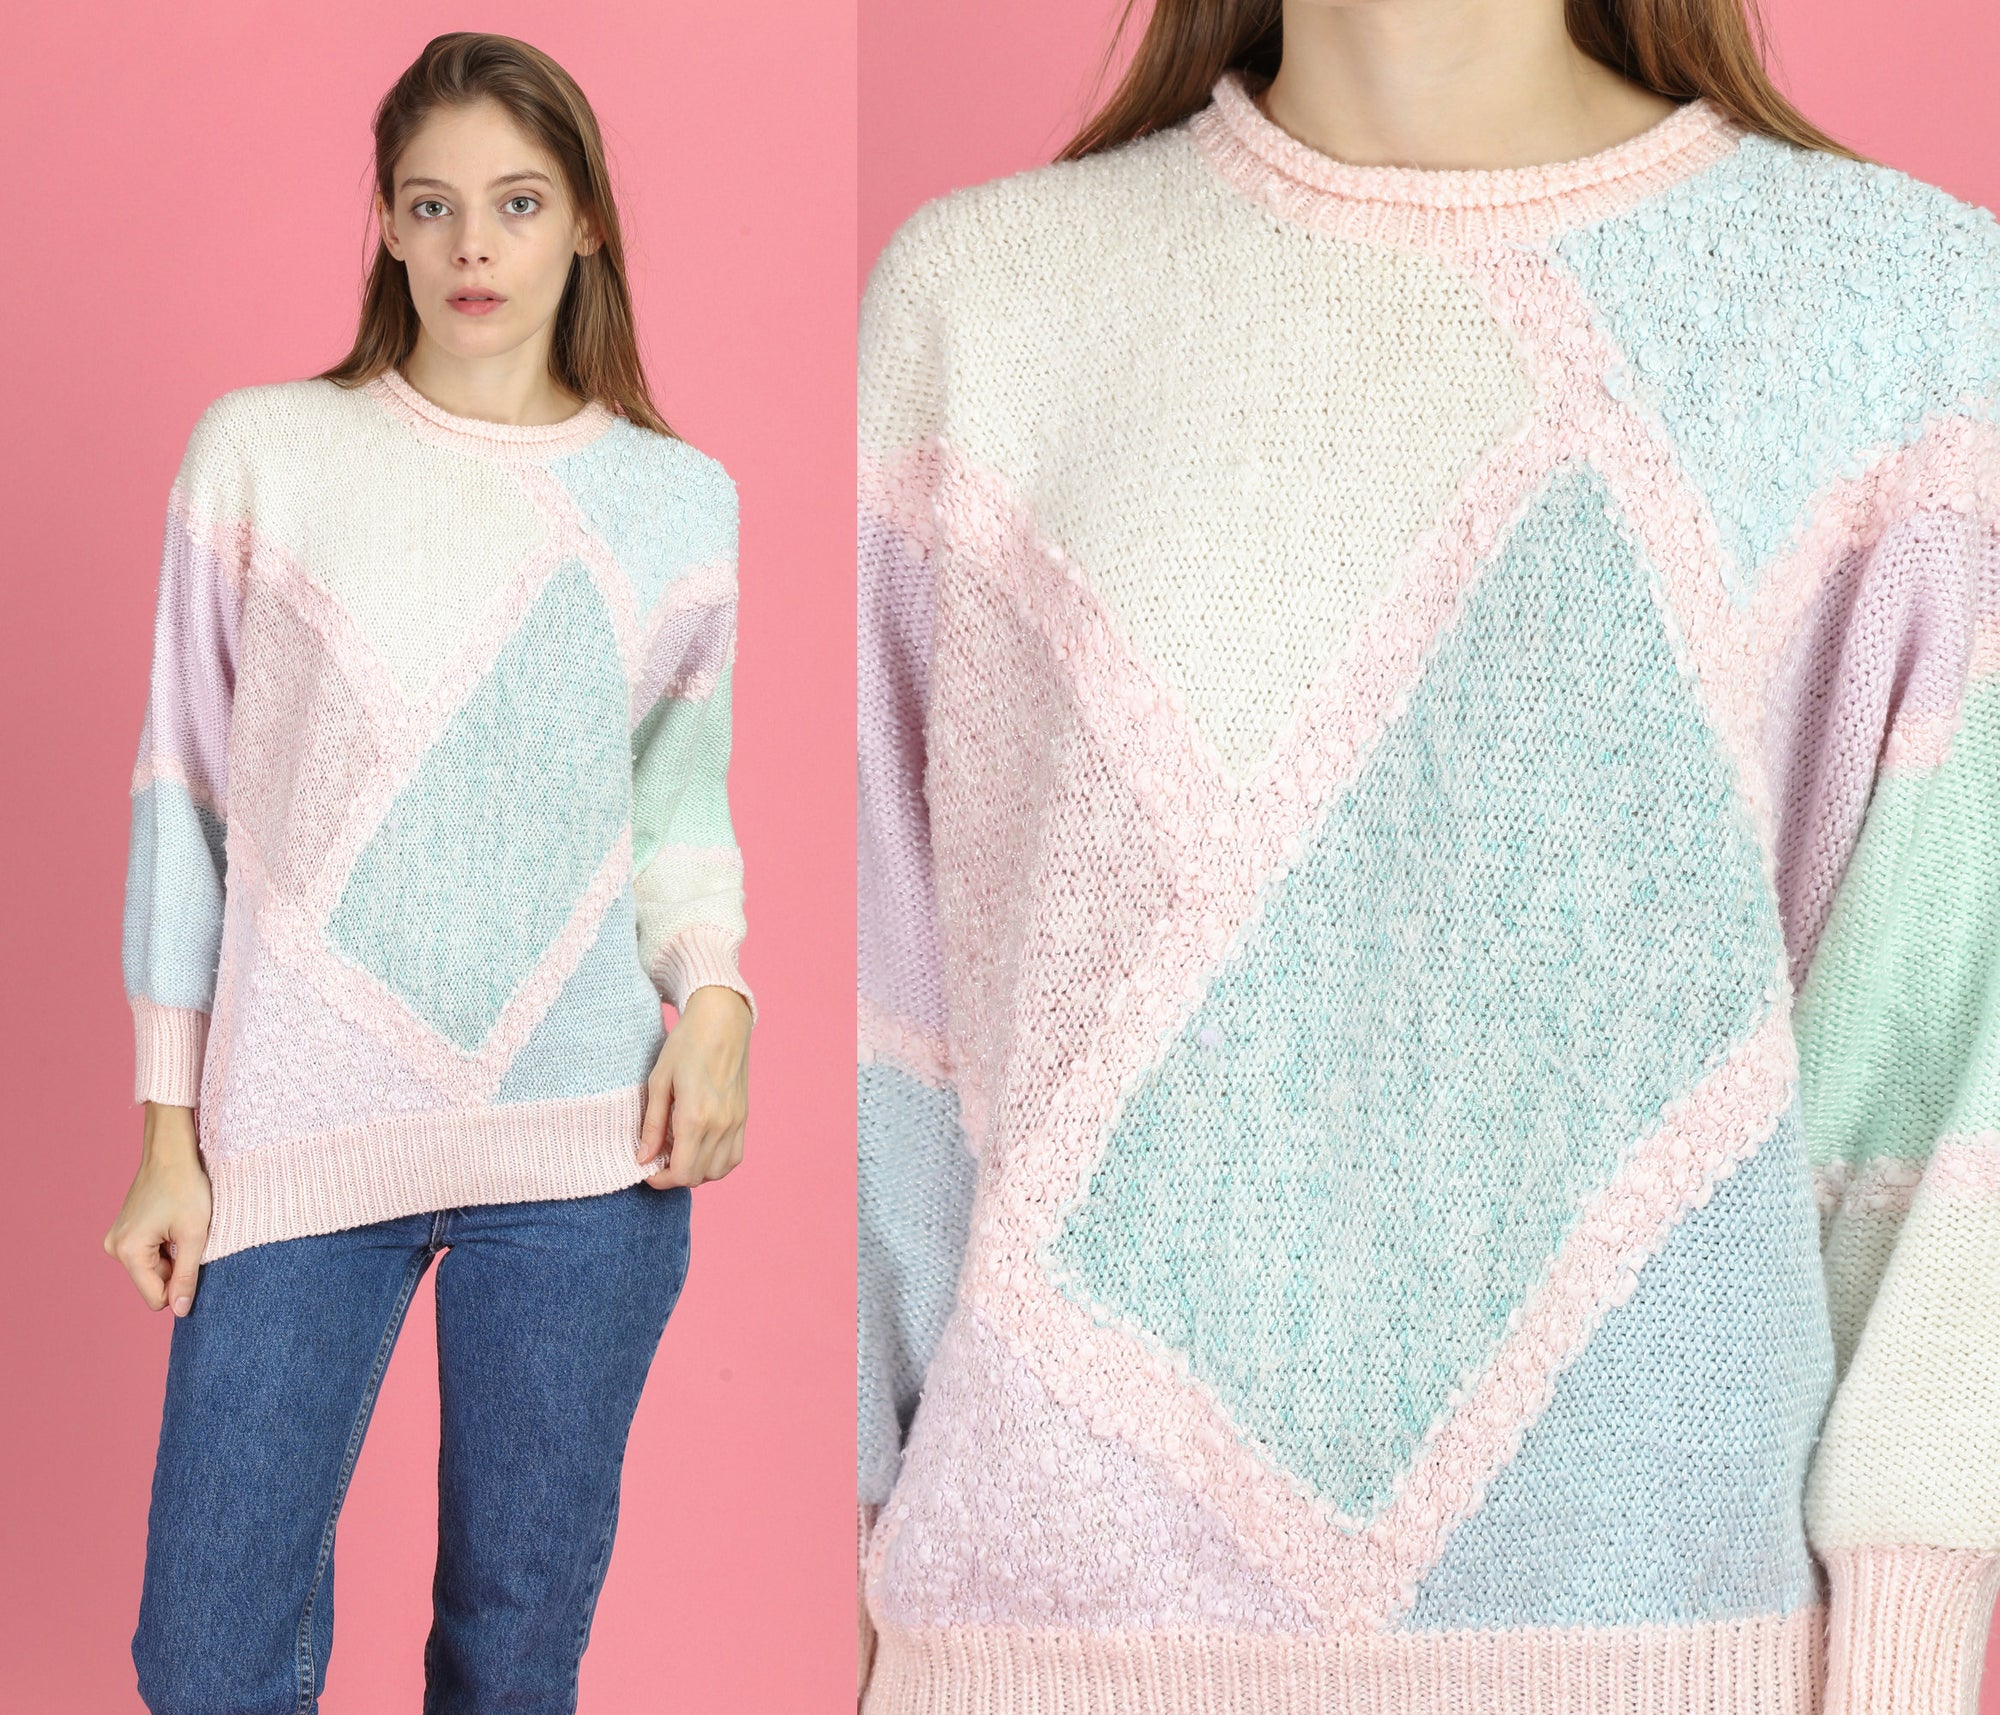 80s Pastel Color Block Knit Sweater - Large